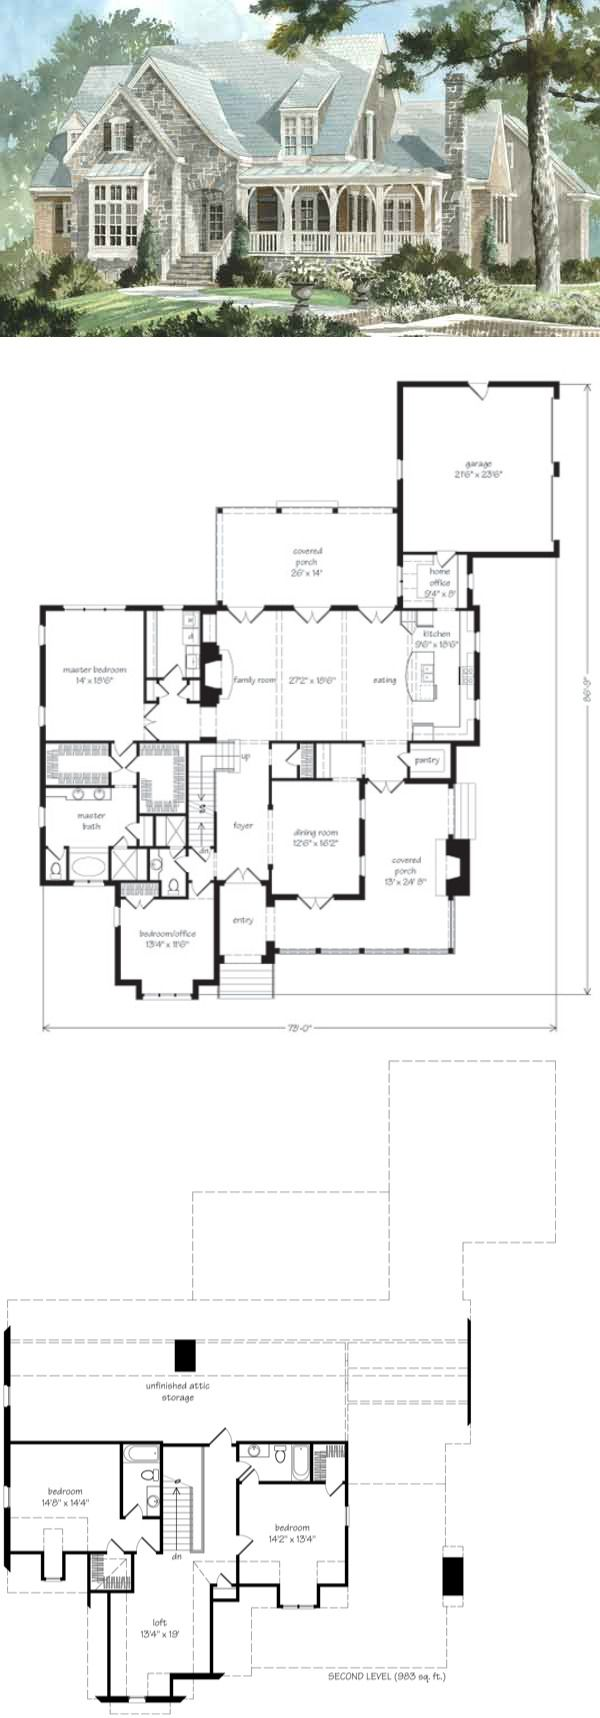 Top 12 Best-Selling House Plans | Southern living house plans ...